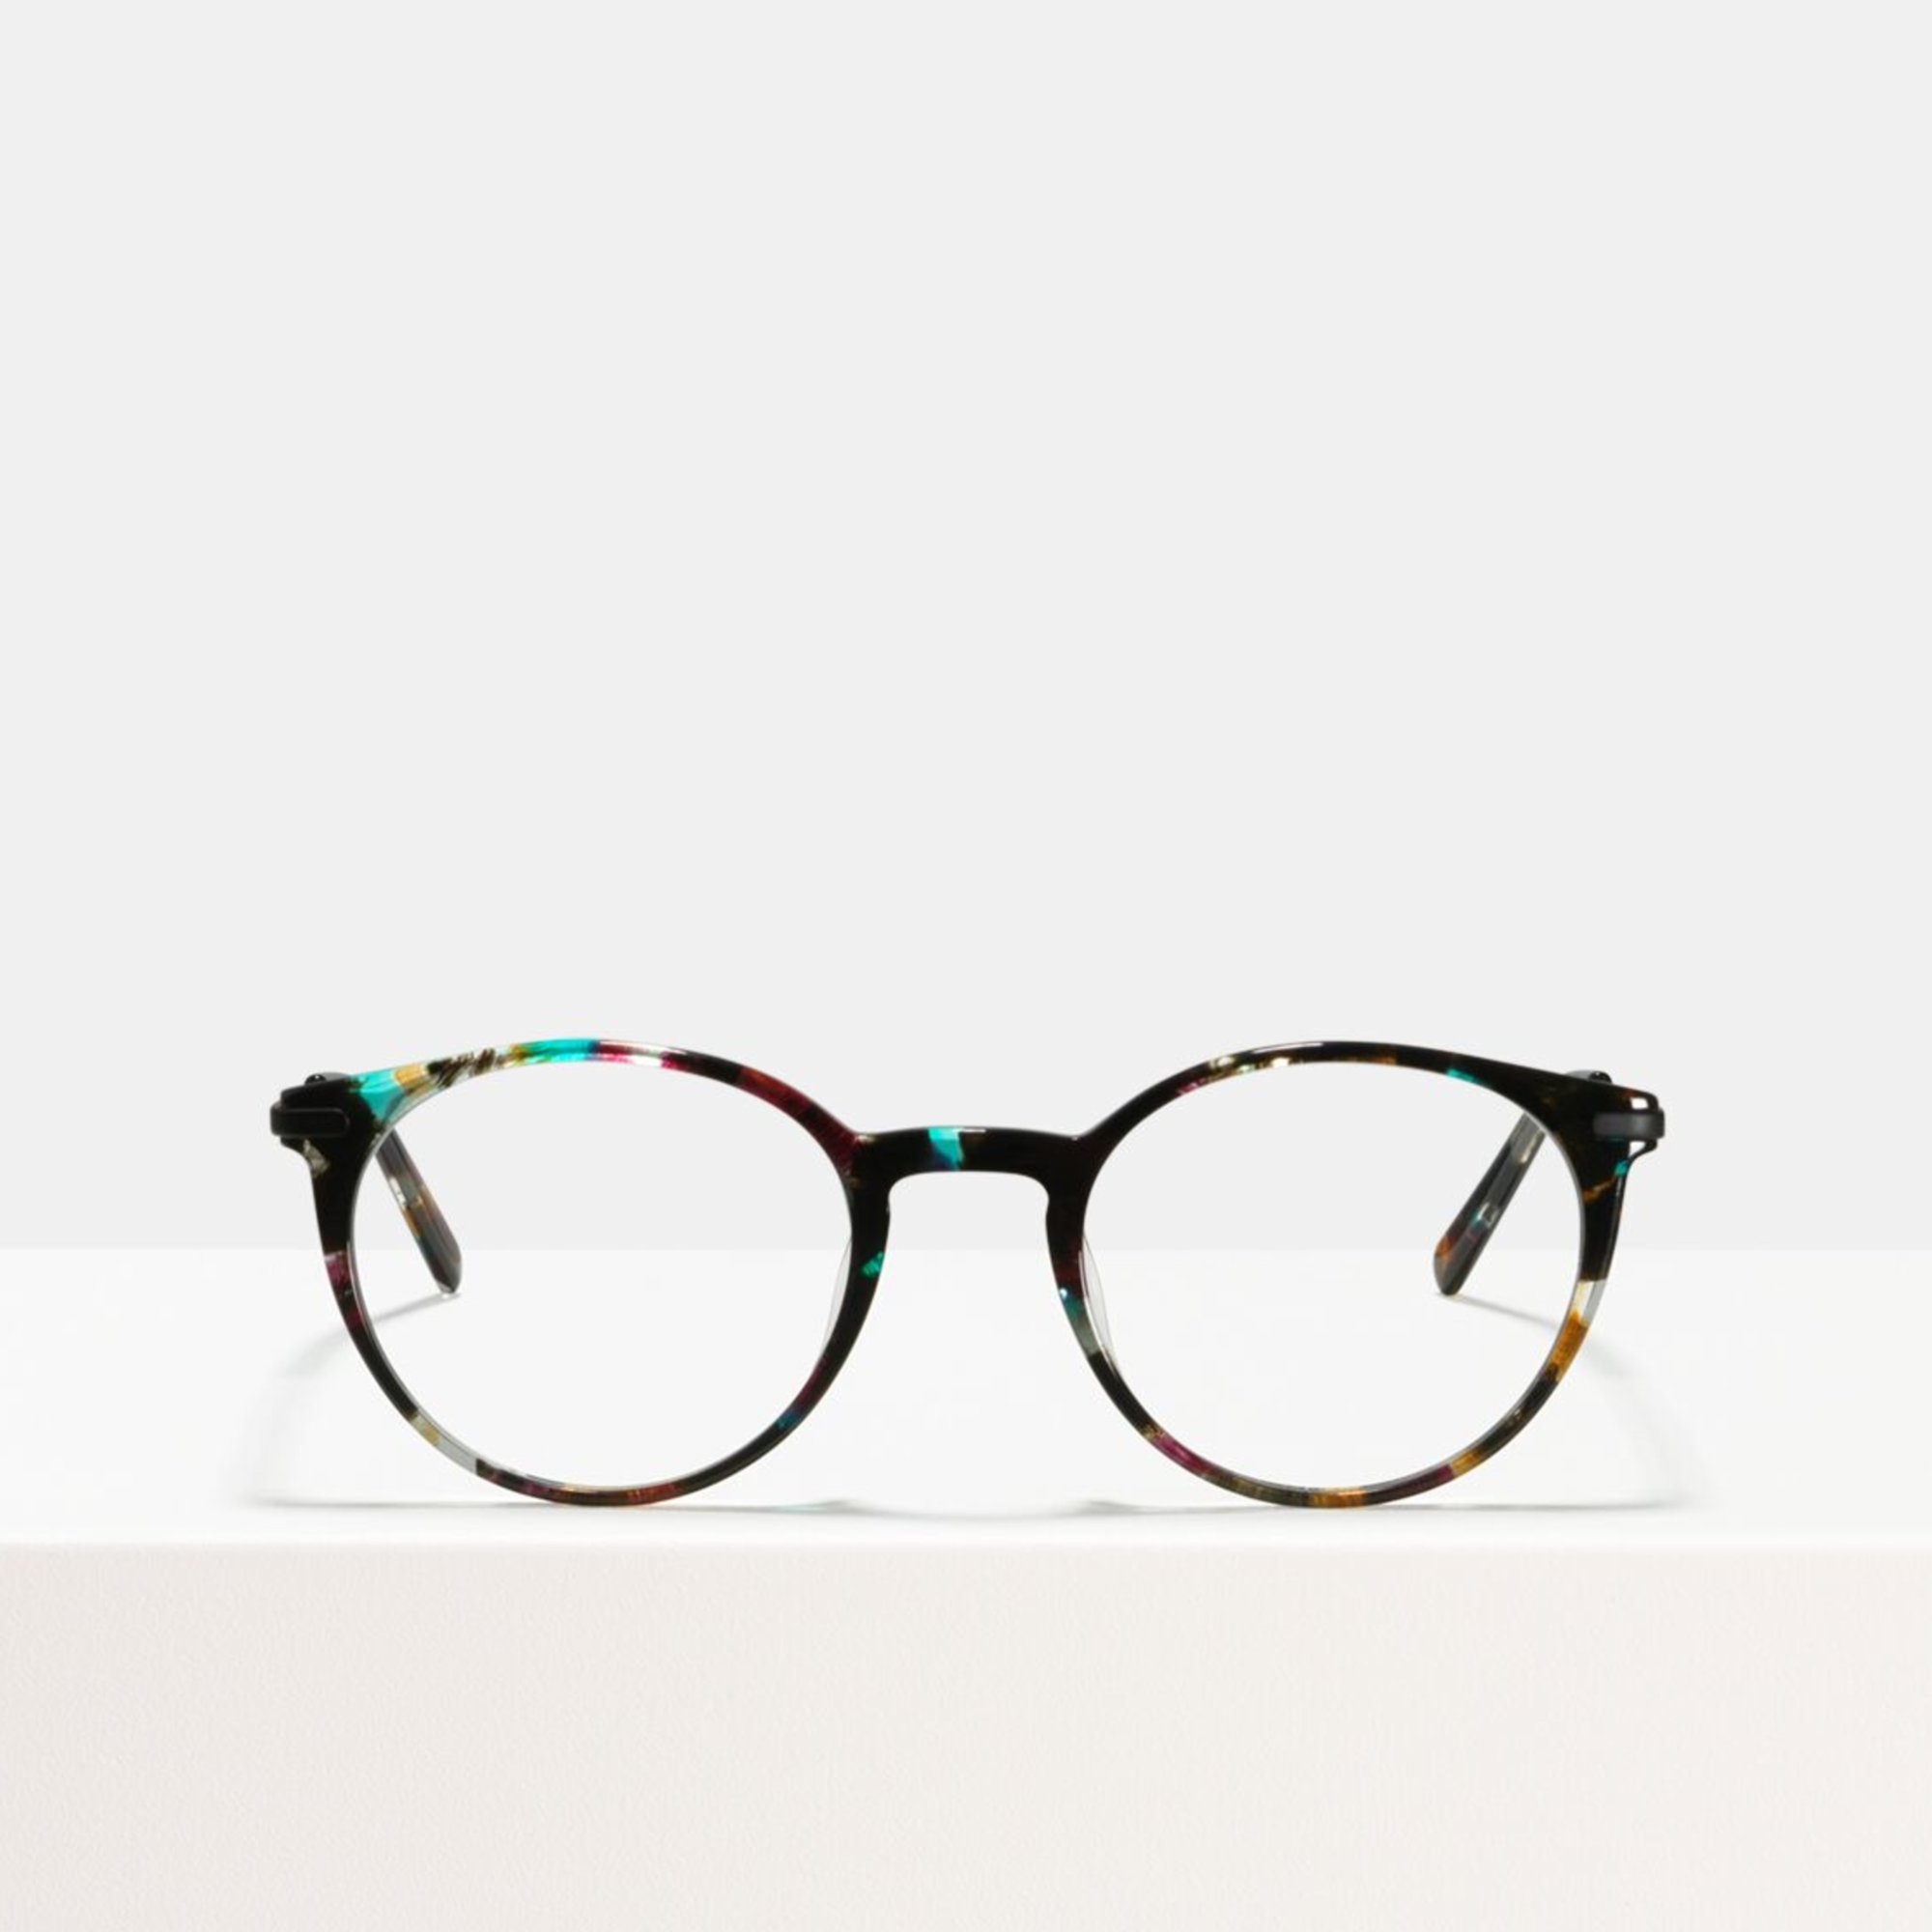 Ace & Tate Glasses | round acetate in Black, Blue, Brown, Pink